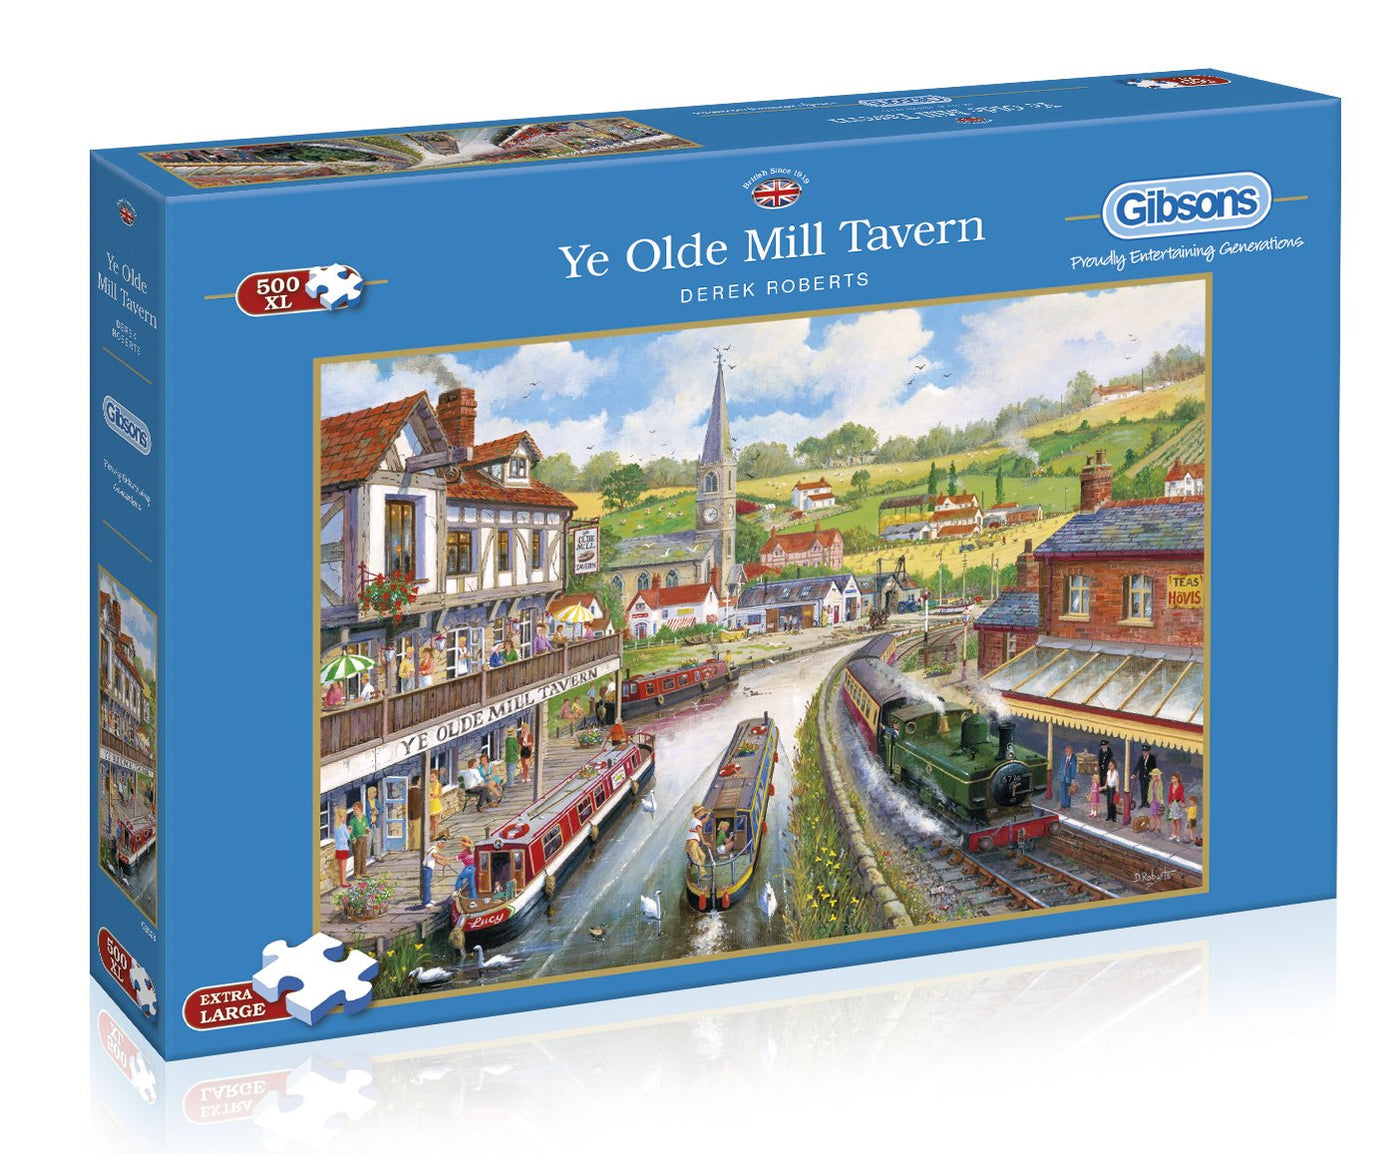 Ye Olde Mill Tavern G6240 English Countryside Town Gibsons 1000 Piece Jigsaw